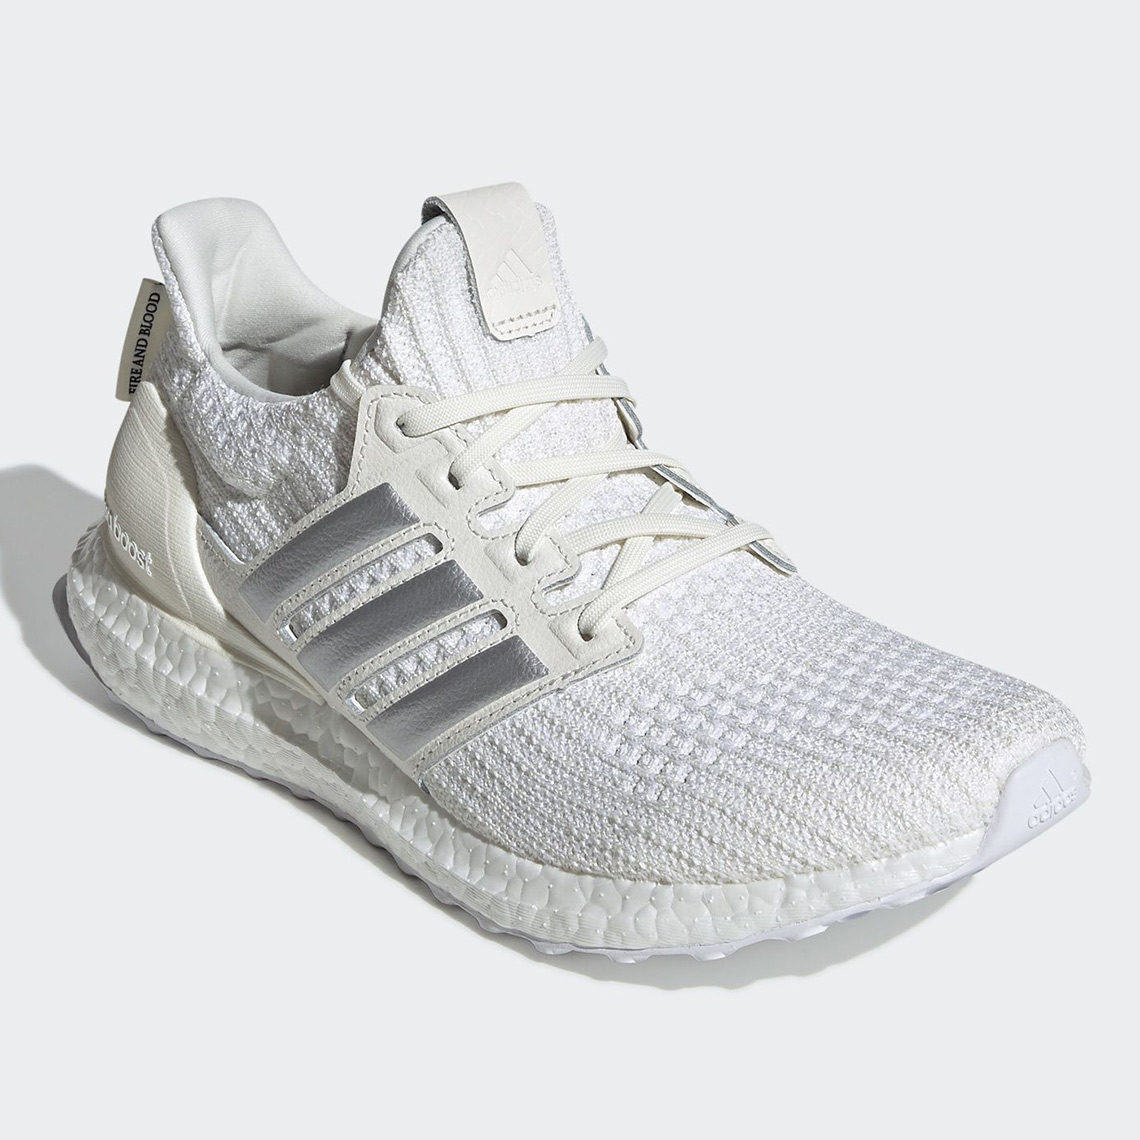 adidas-ultra-boost-game-of-thrones-targaryan-white-ee3711-19.jpg